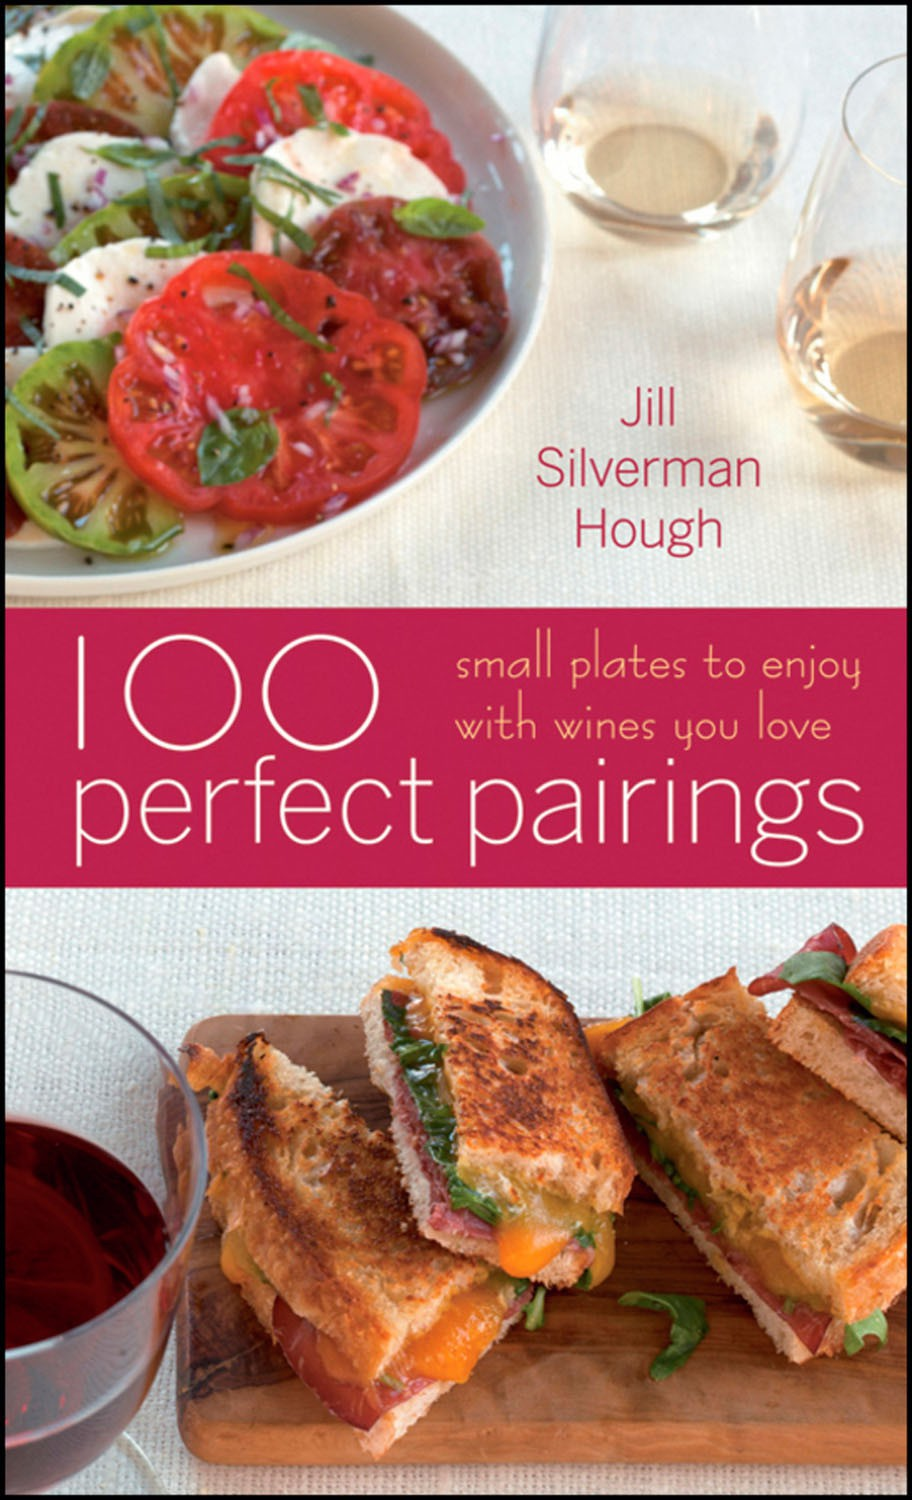 100 Perfect Pairings: Small Plates to Serve w/ Wine You Love